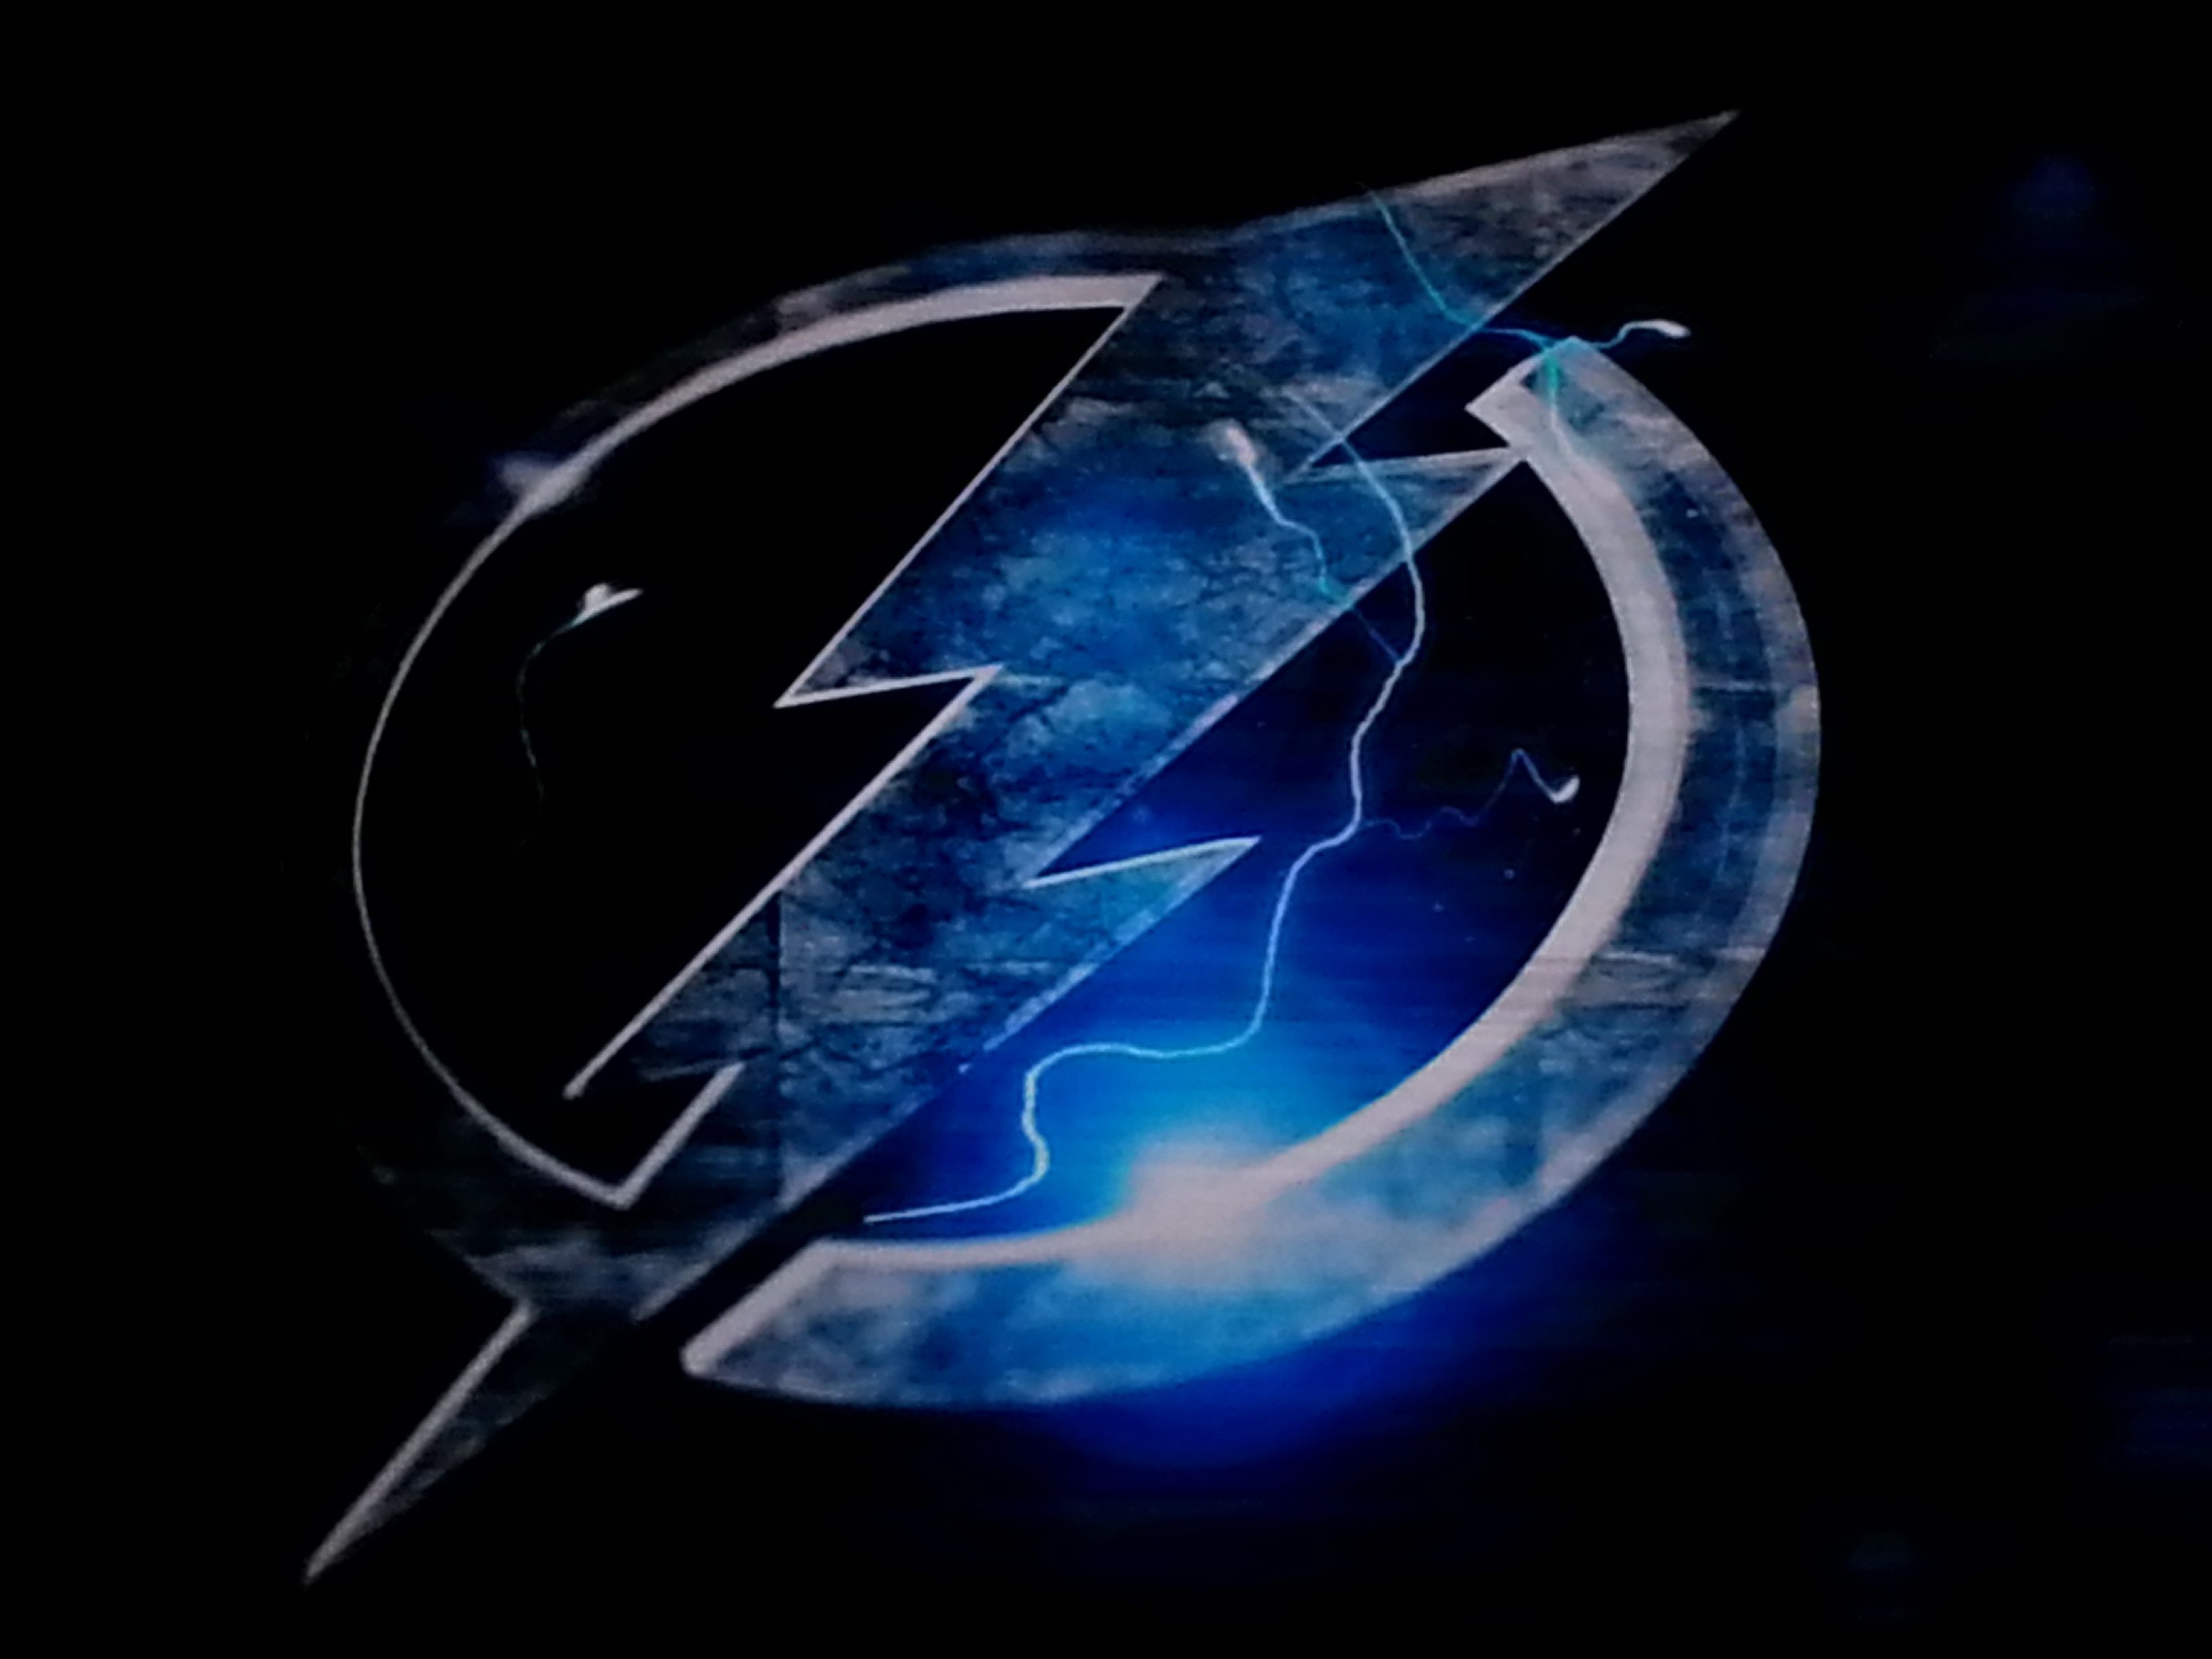 Tampa Bay Lightning Wallpapers 3264x2448